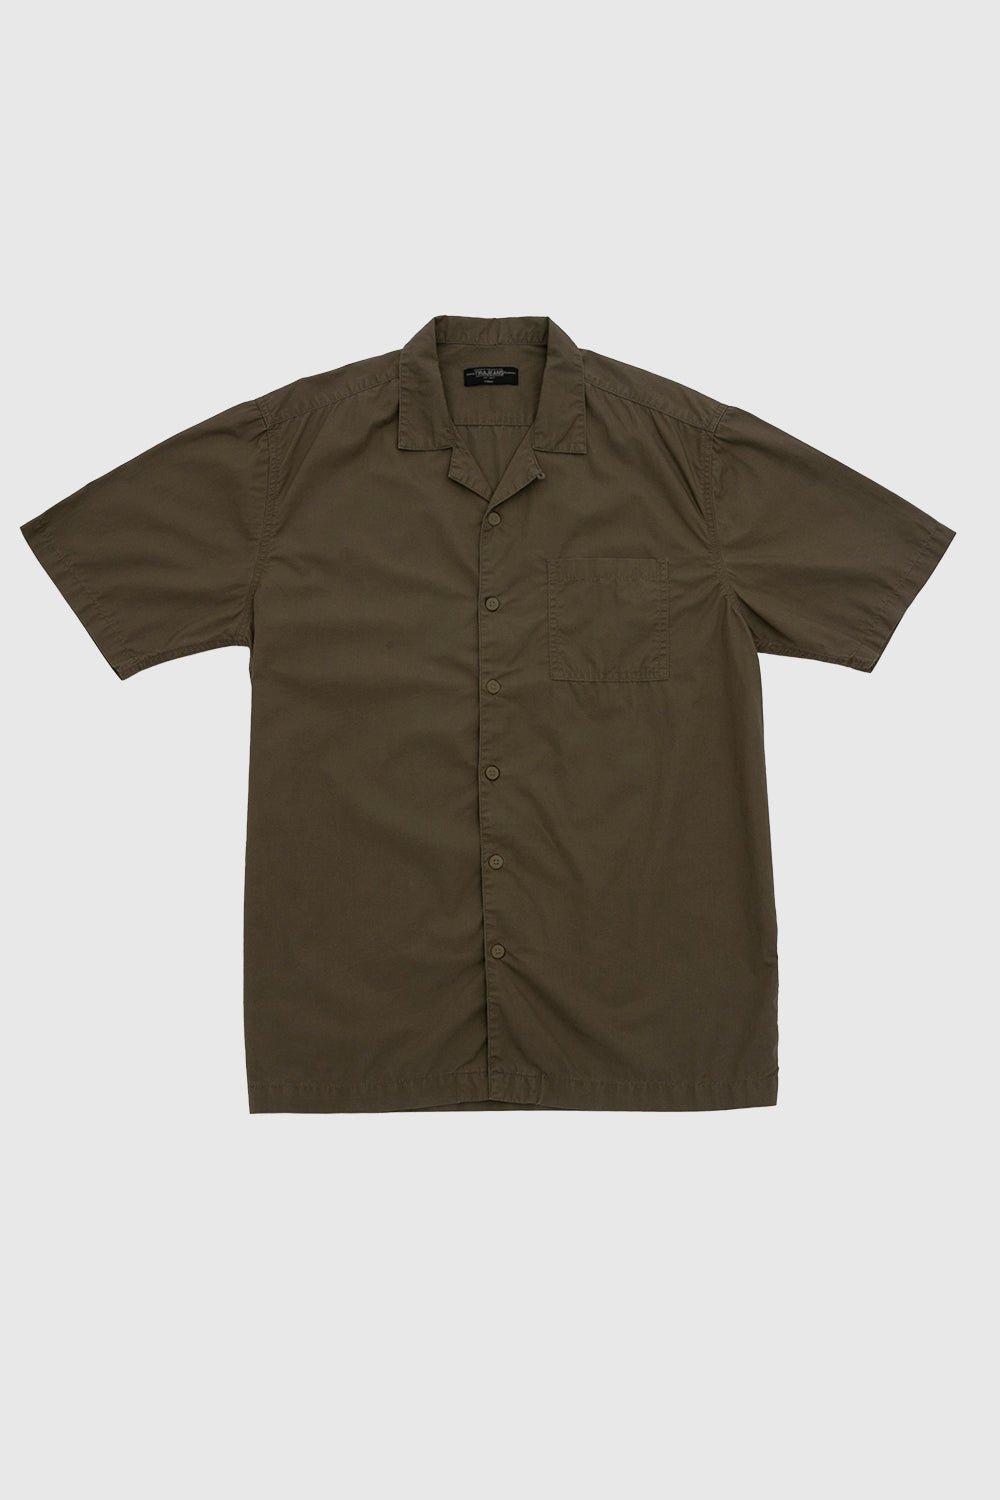 SHIRT S/S OLIVE SS21